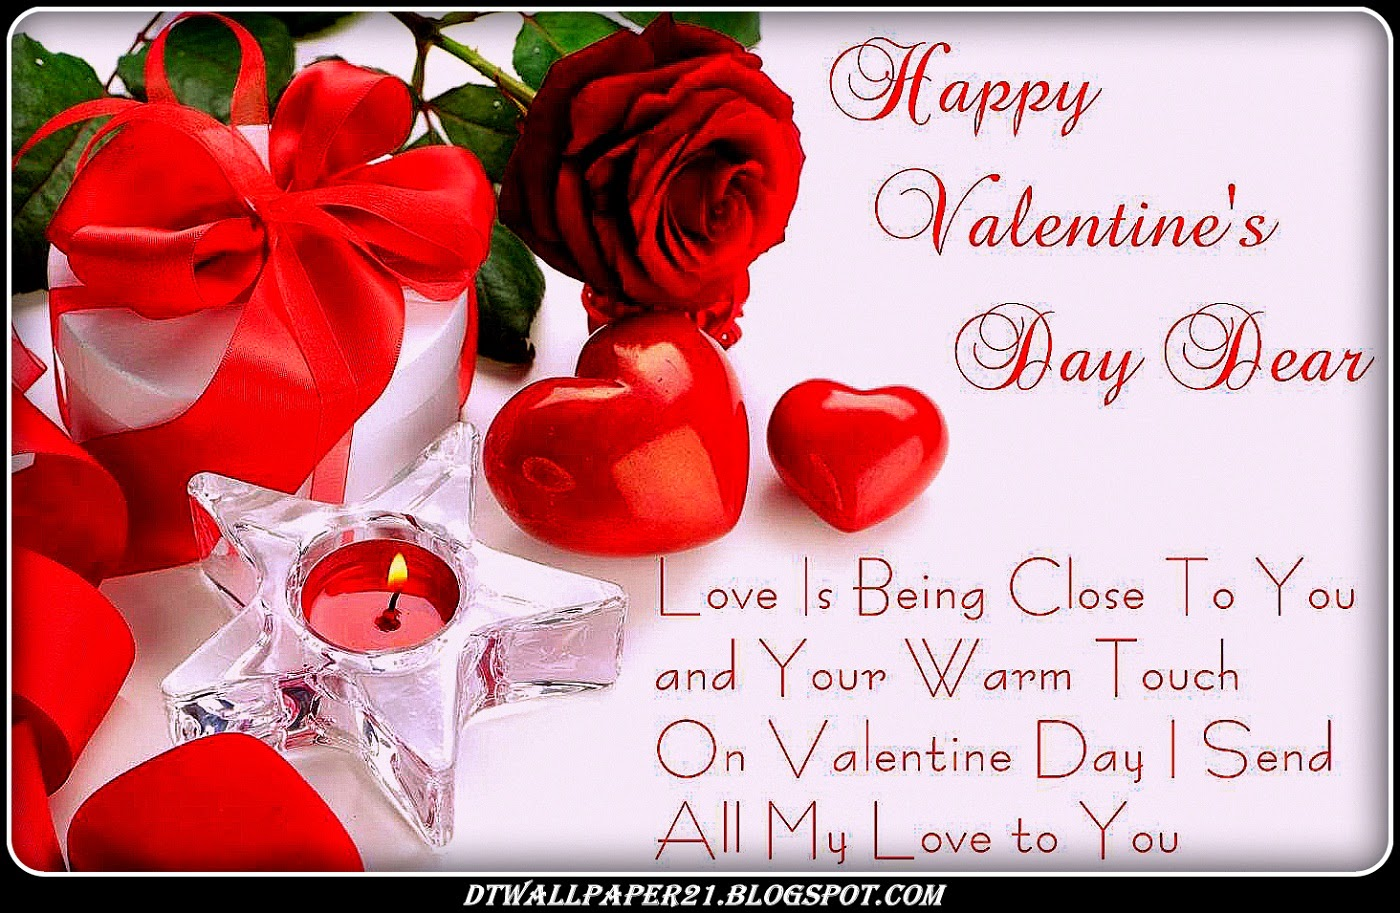 Valentine Quotes For Close Friends : Happy valentine s day wishes quotes with sweet images for your best friends really good life